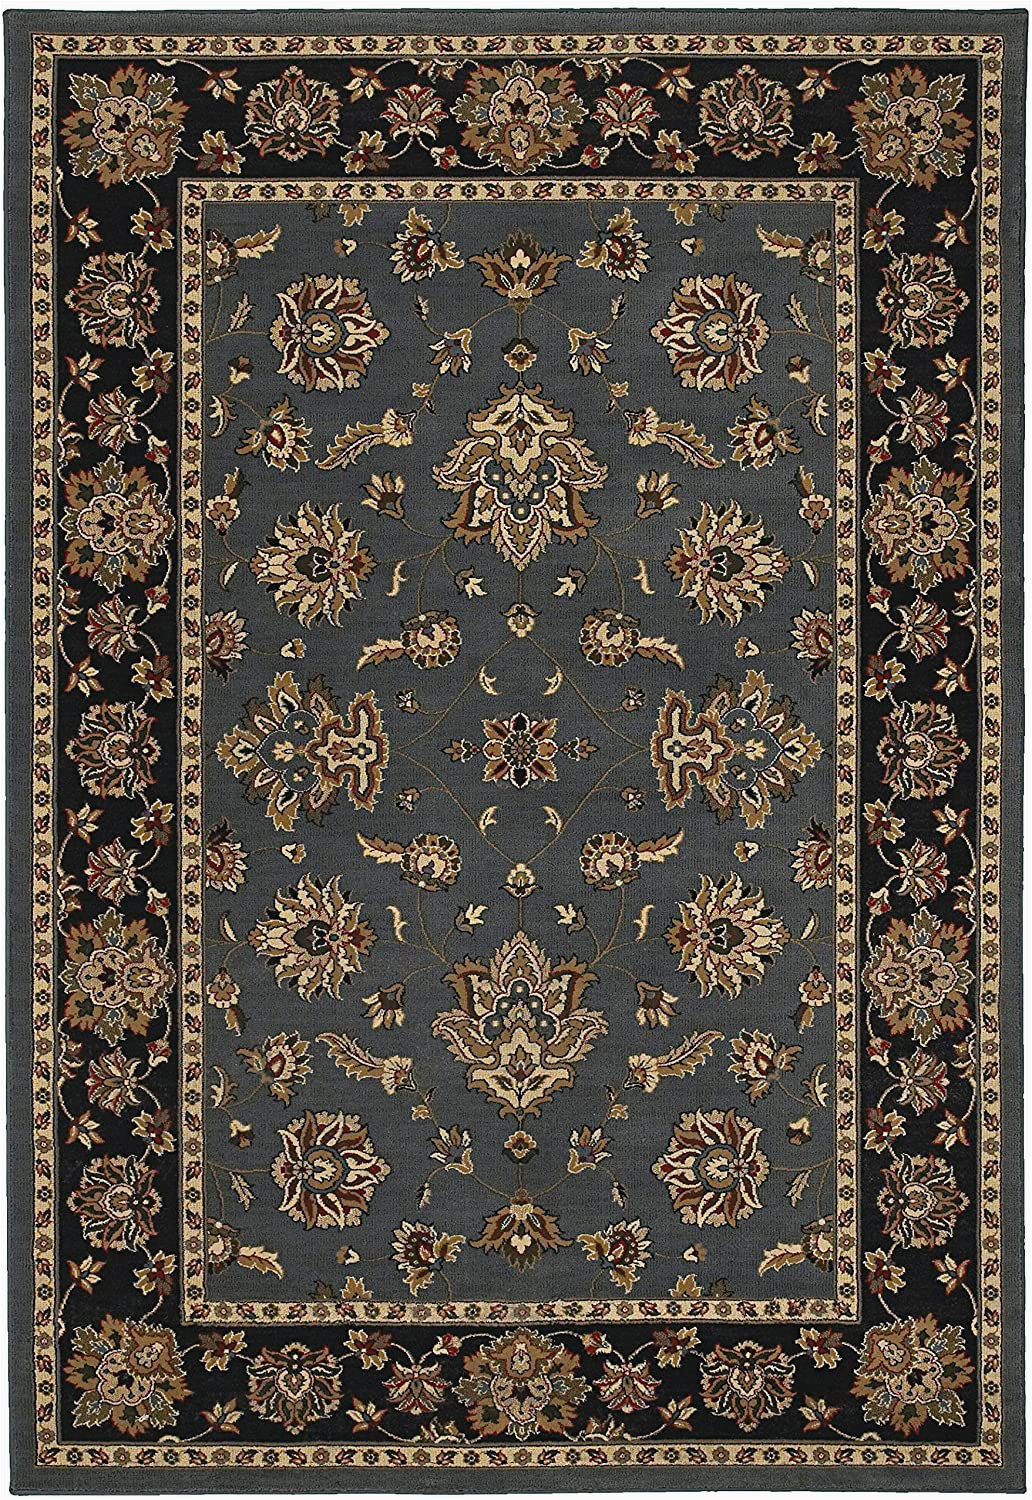 10ft by 12ft area Rugs Amazon Living fort Altessa 10ft X 12ft 7in